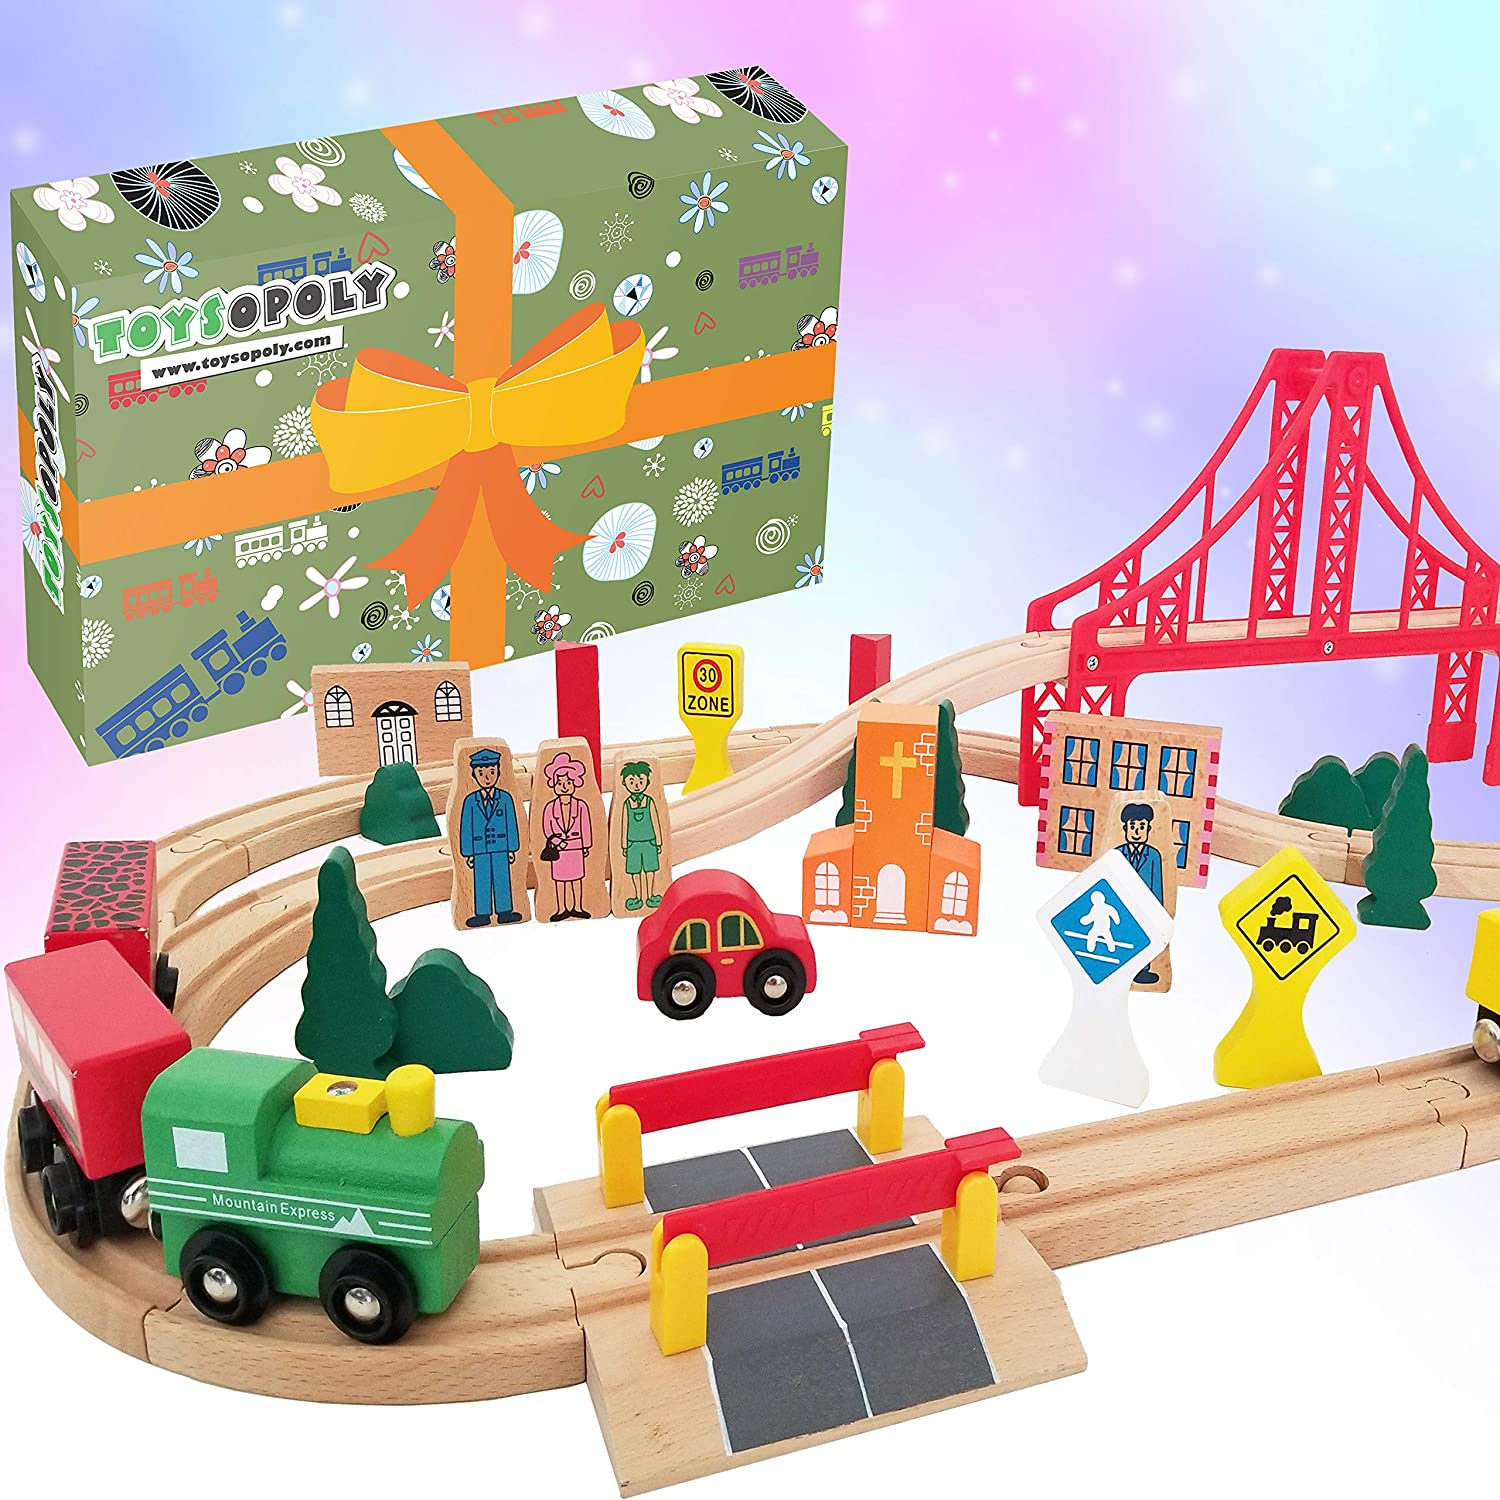 Sale SALE% OFF Wooden Train Tracks Full Set Deluxe 55 F 3 Max 40% OFF Destination Pcs with